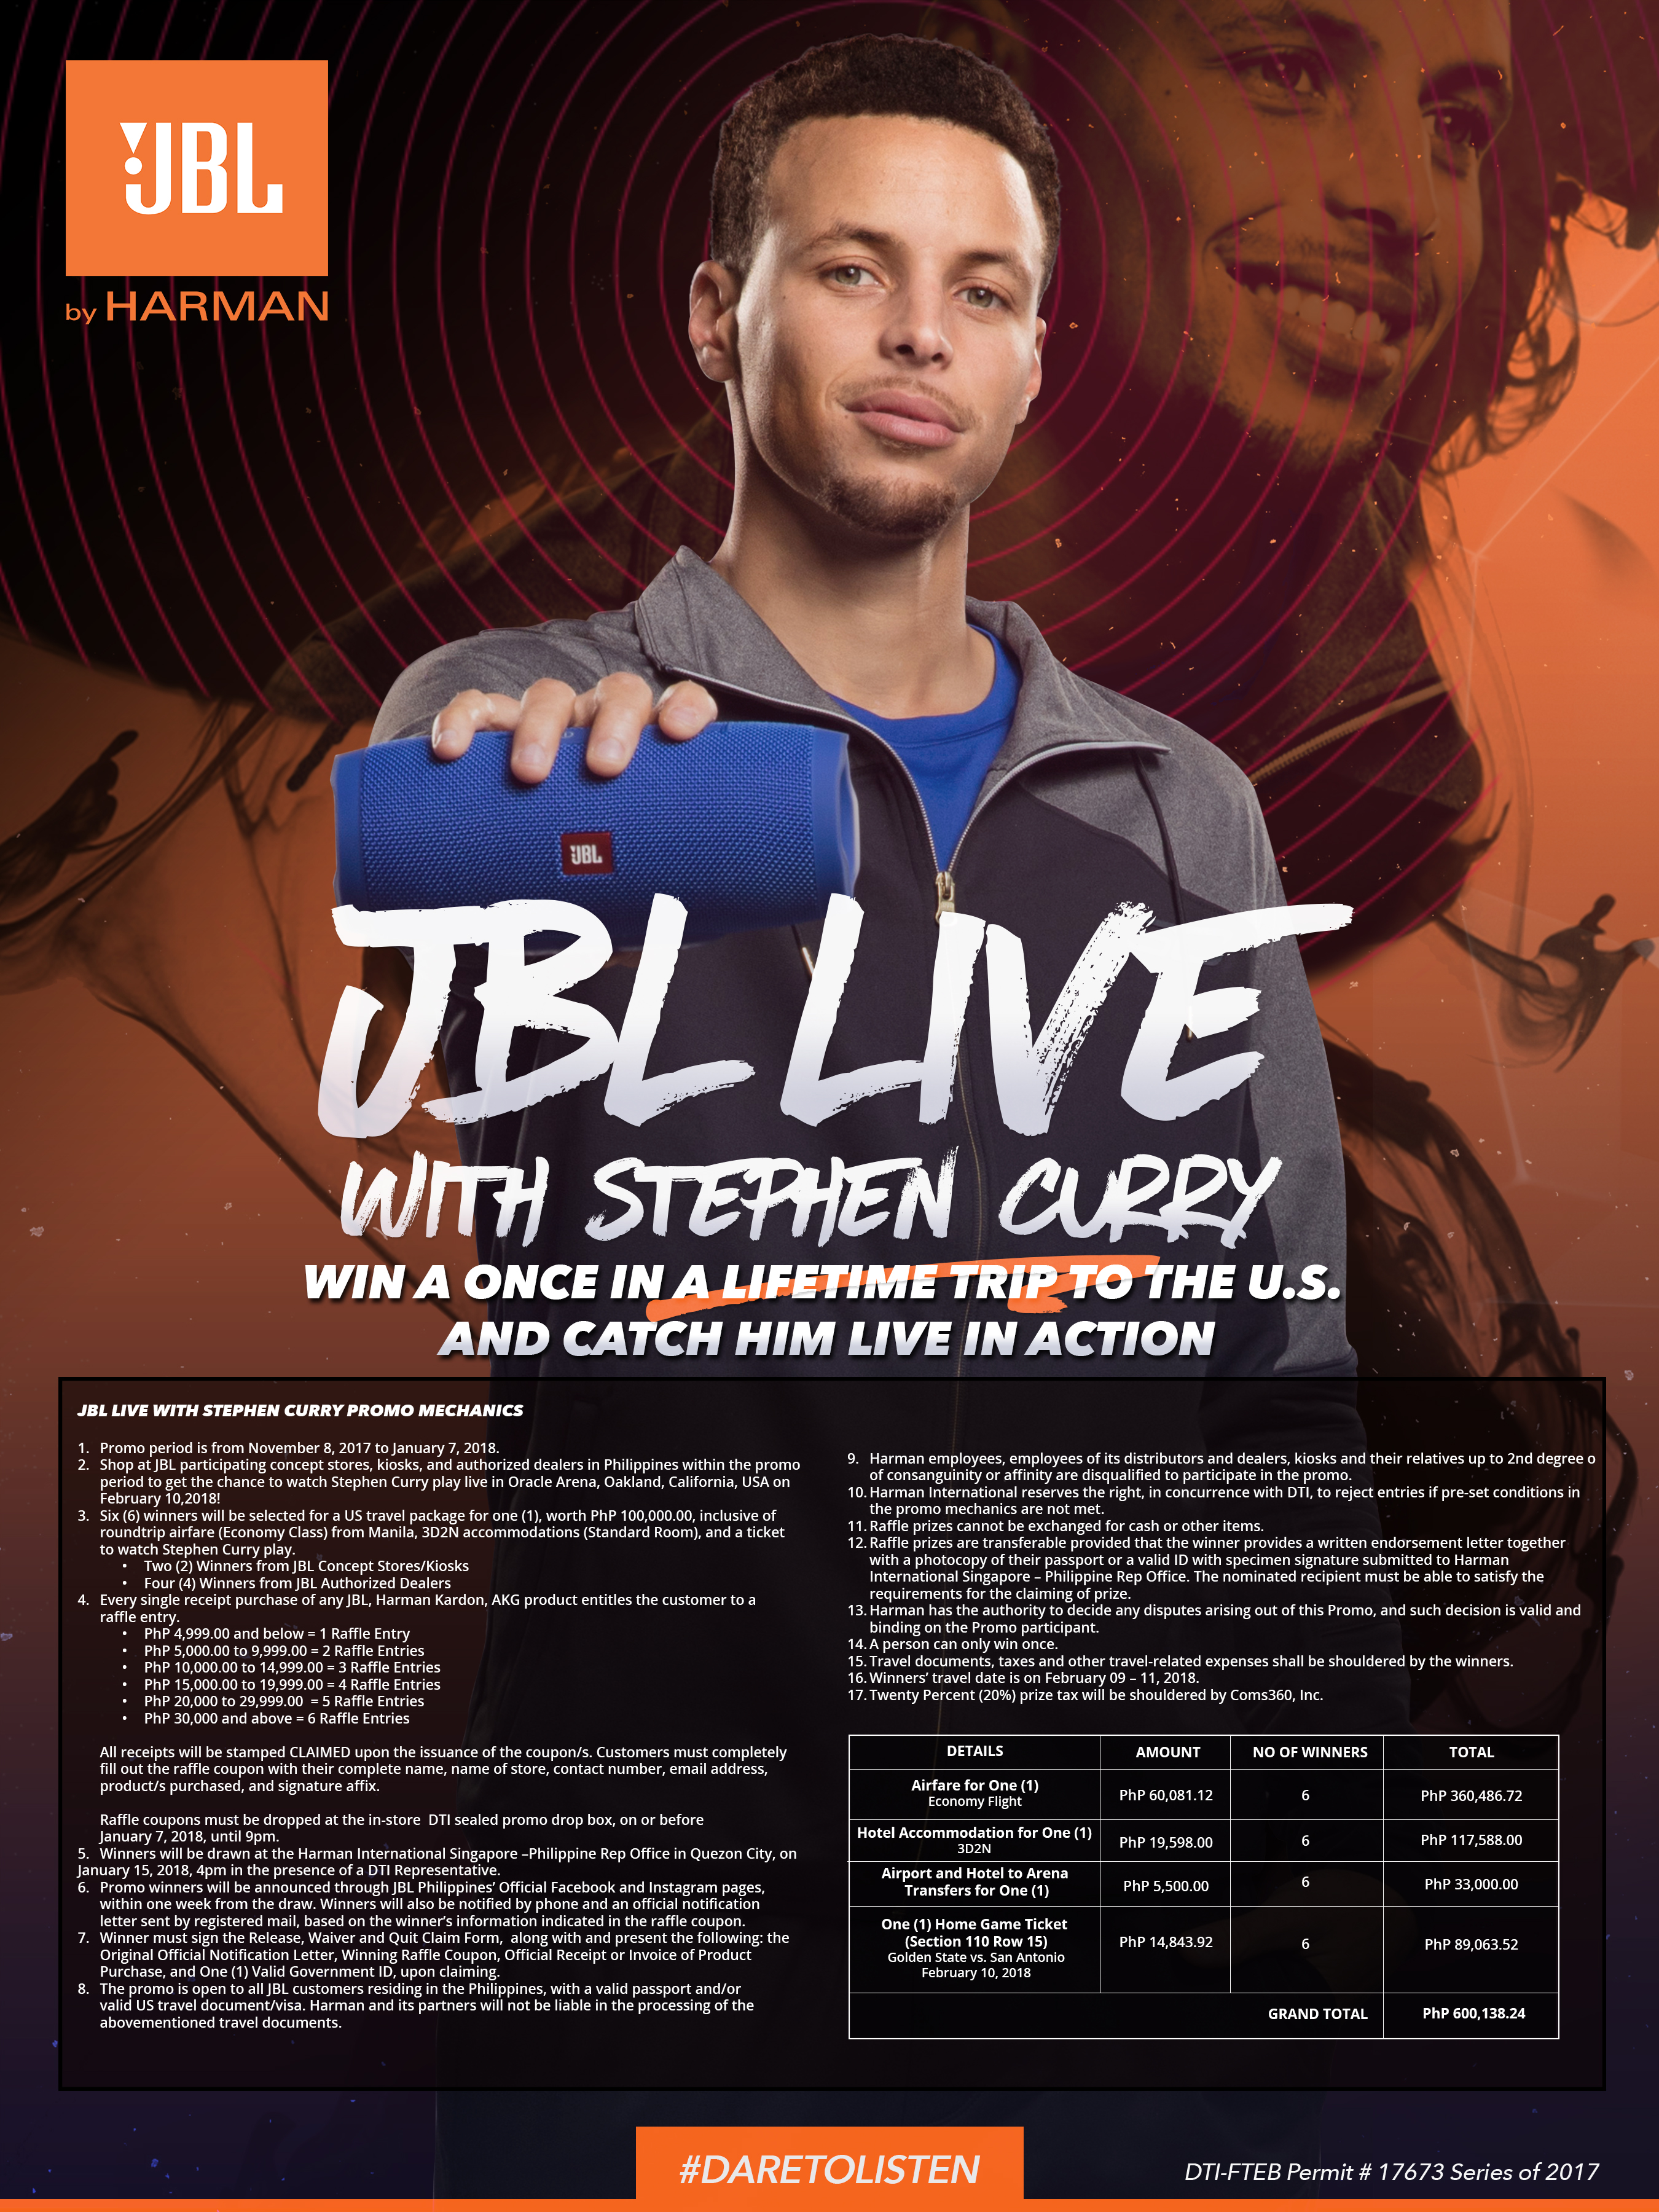 Date To Listen And Catch Stephen Curry Live with JBL